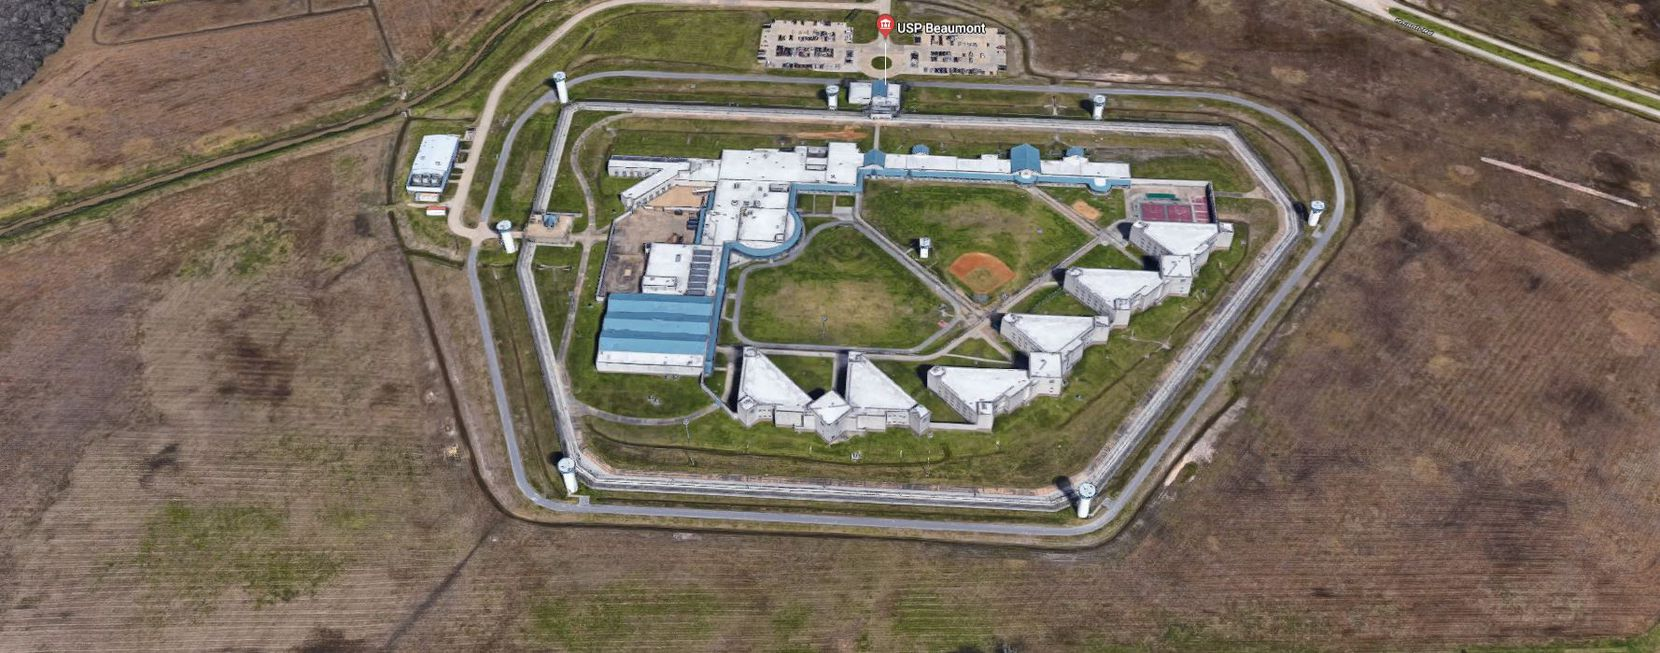 Authorities say prisoners have repeatedly left the facility to pick up contraband from neighboring property.